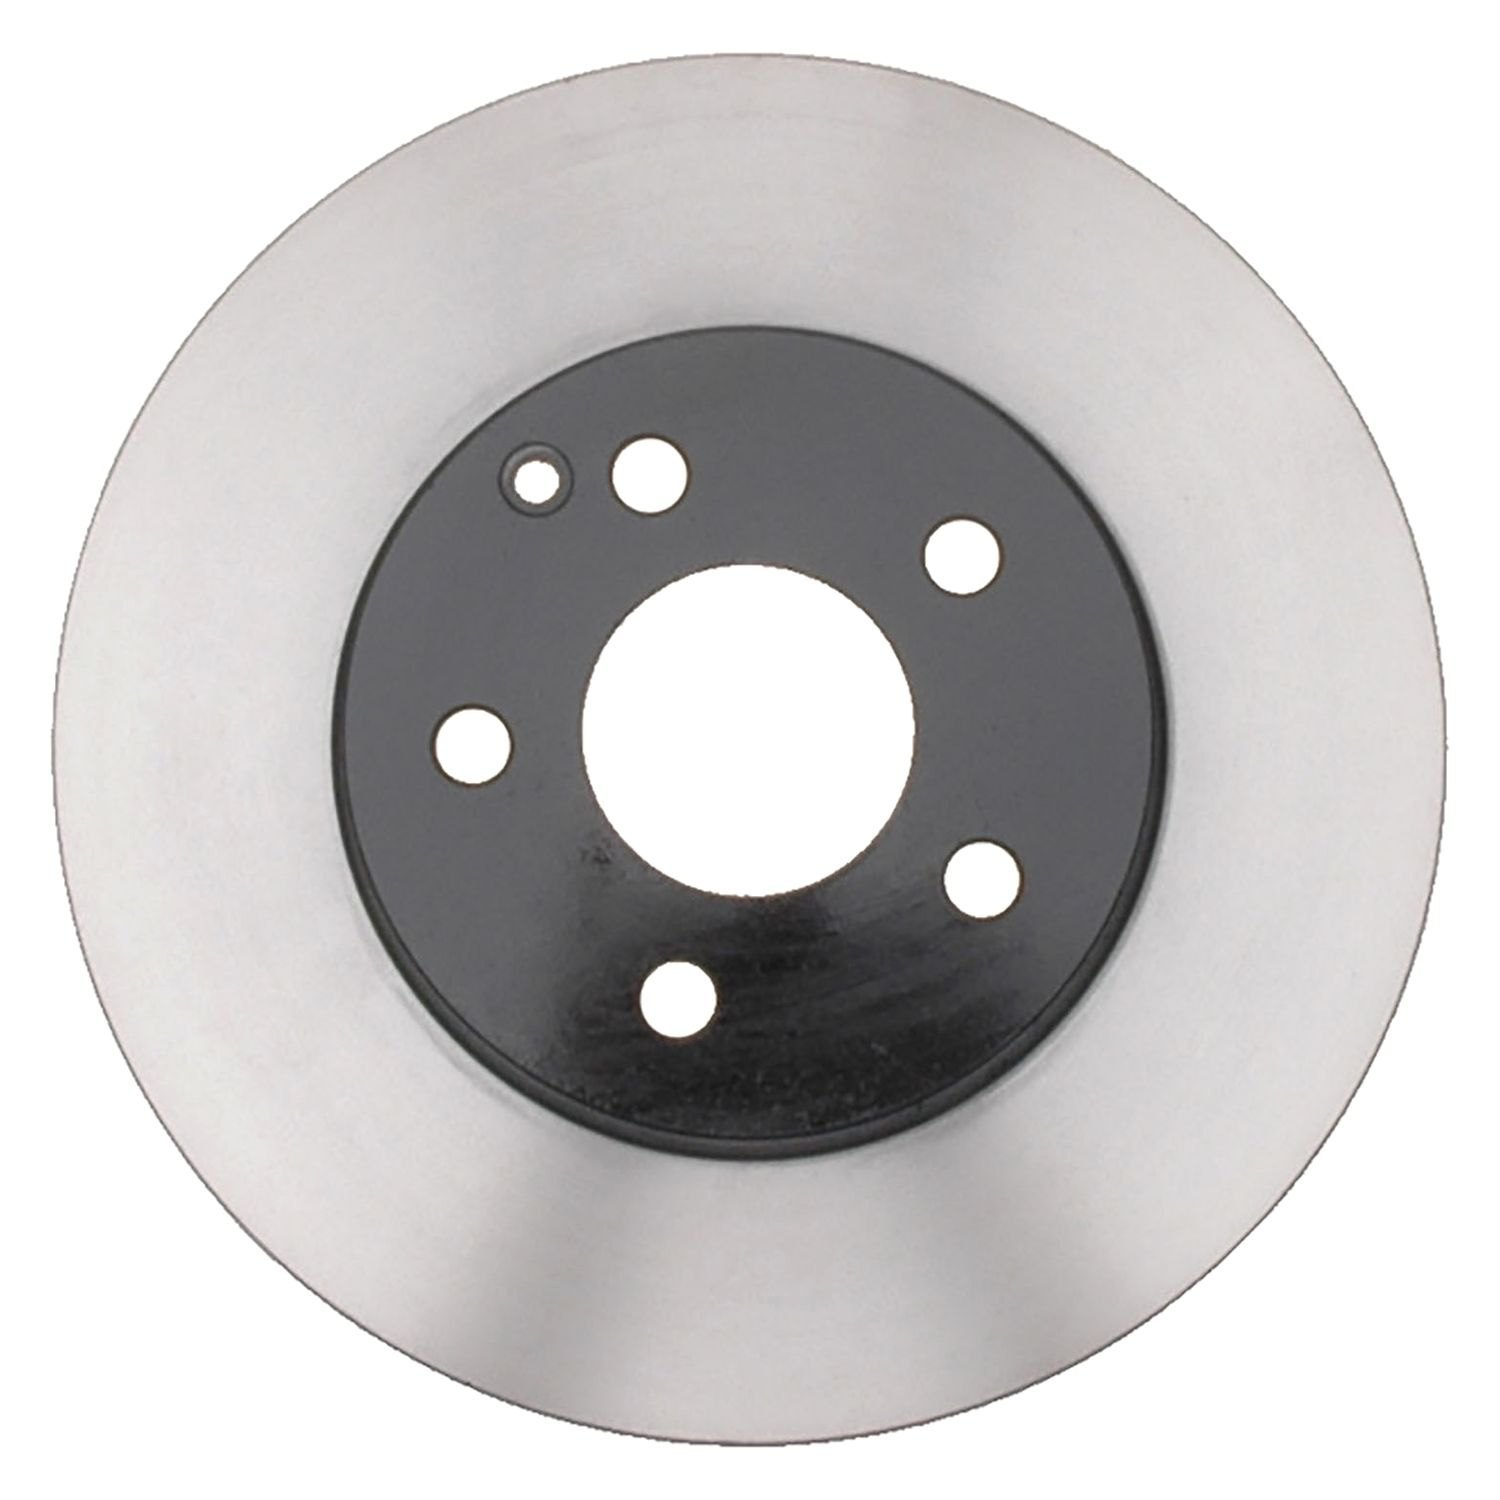 Acdelco mercedes c class 2013 professional 1 piece for Mercedes benz c300 brake rotors